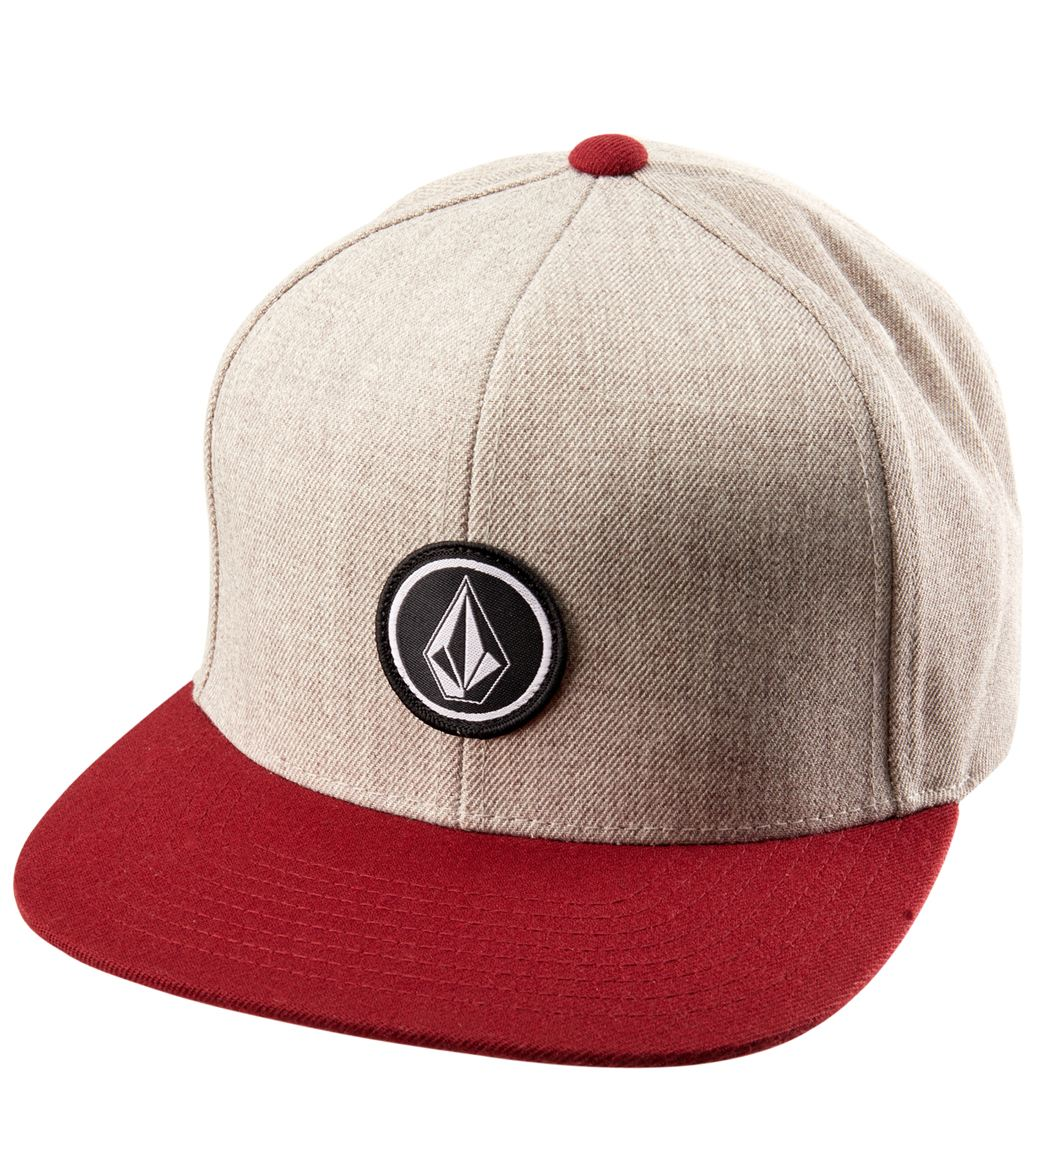 416f506015c719 Volcom Men's Quarter Twill Snapback Hat at SwimOutlet.com